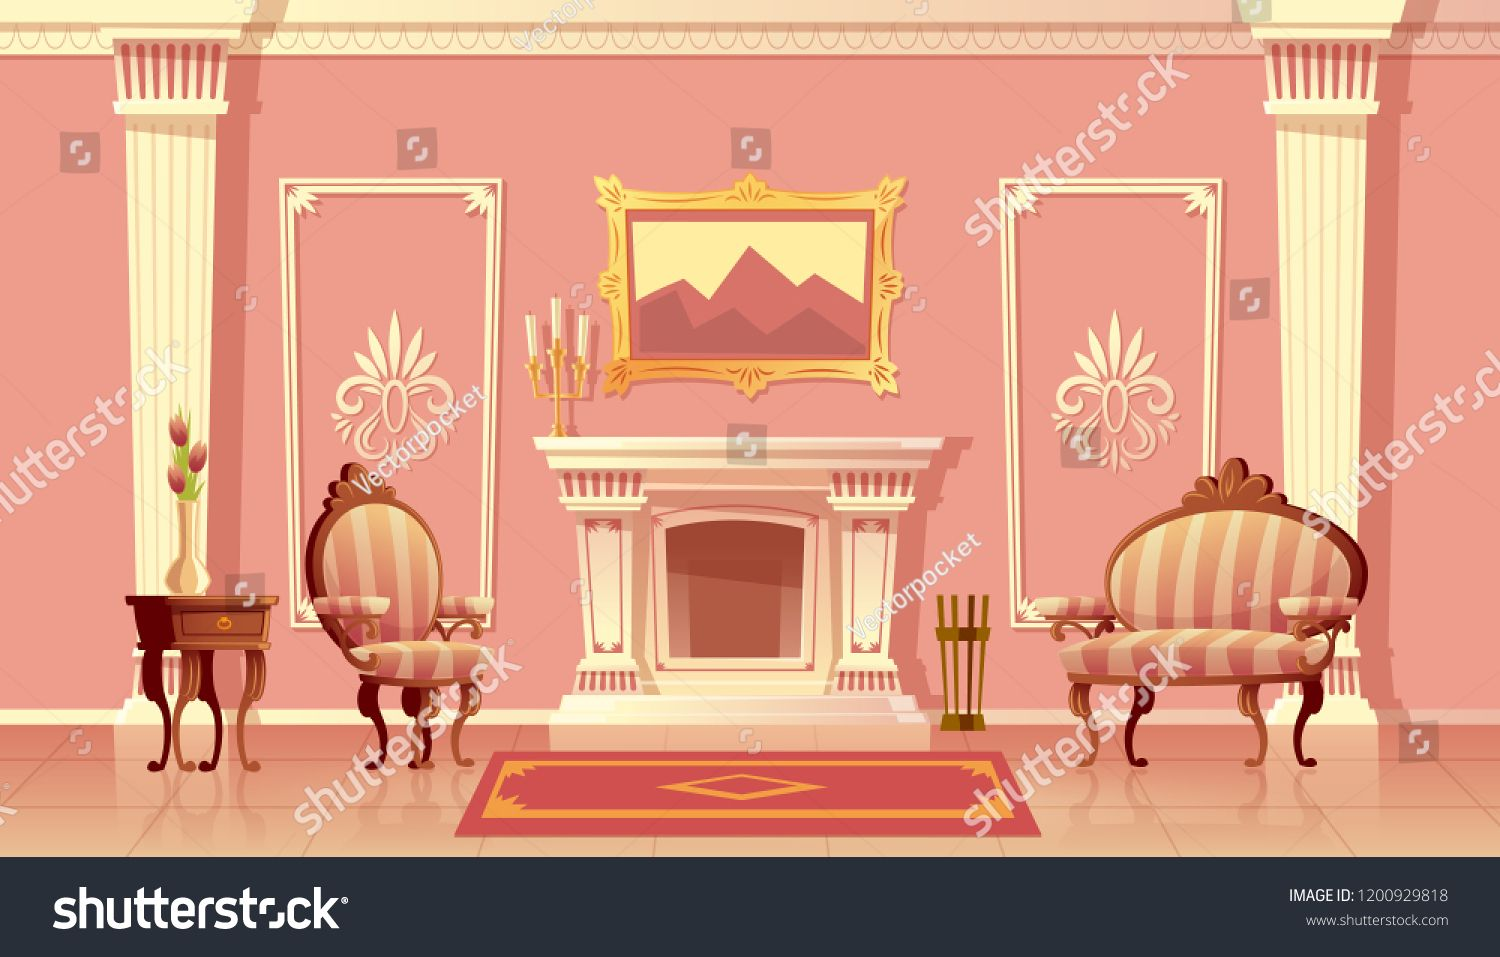 Vector Cartoon Illustration Of Luxury Living Room With Fireplace